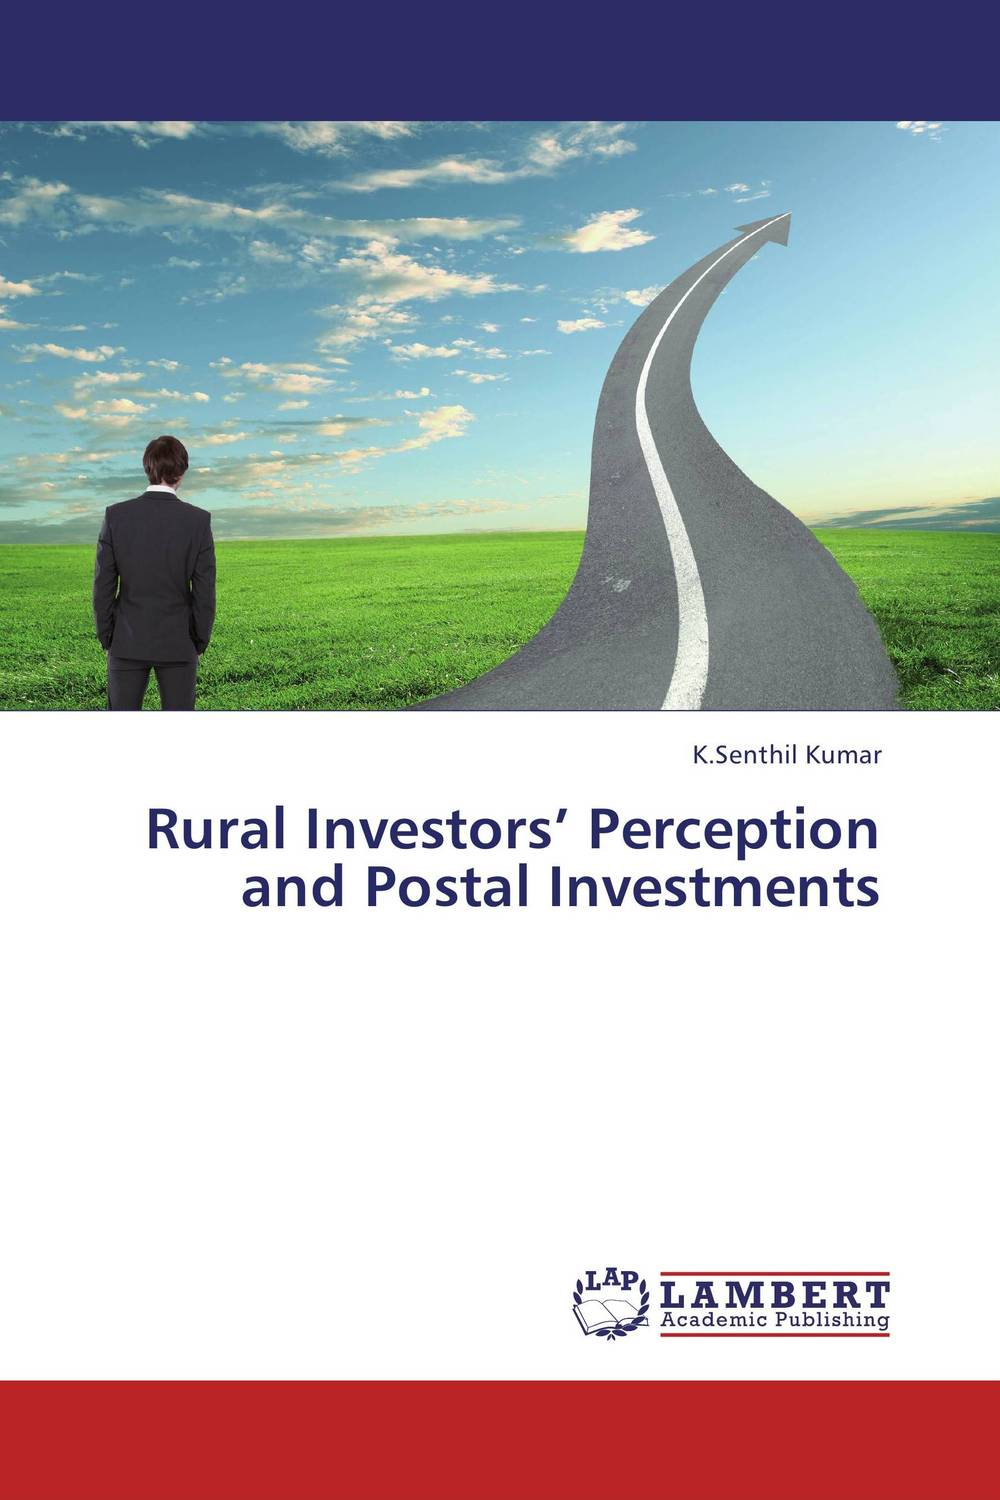 Rural Investors' Perception and Postal Investments